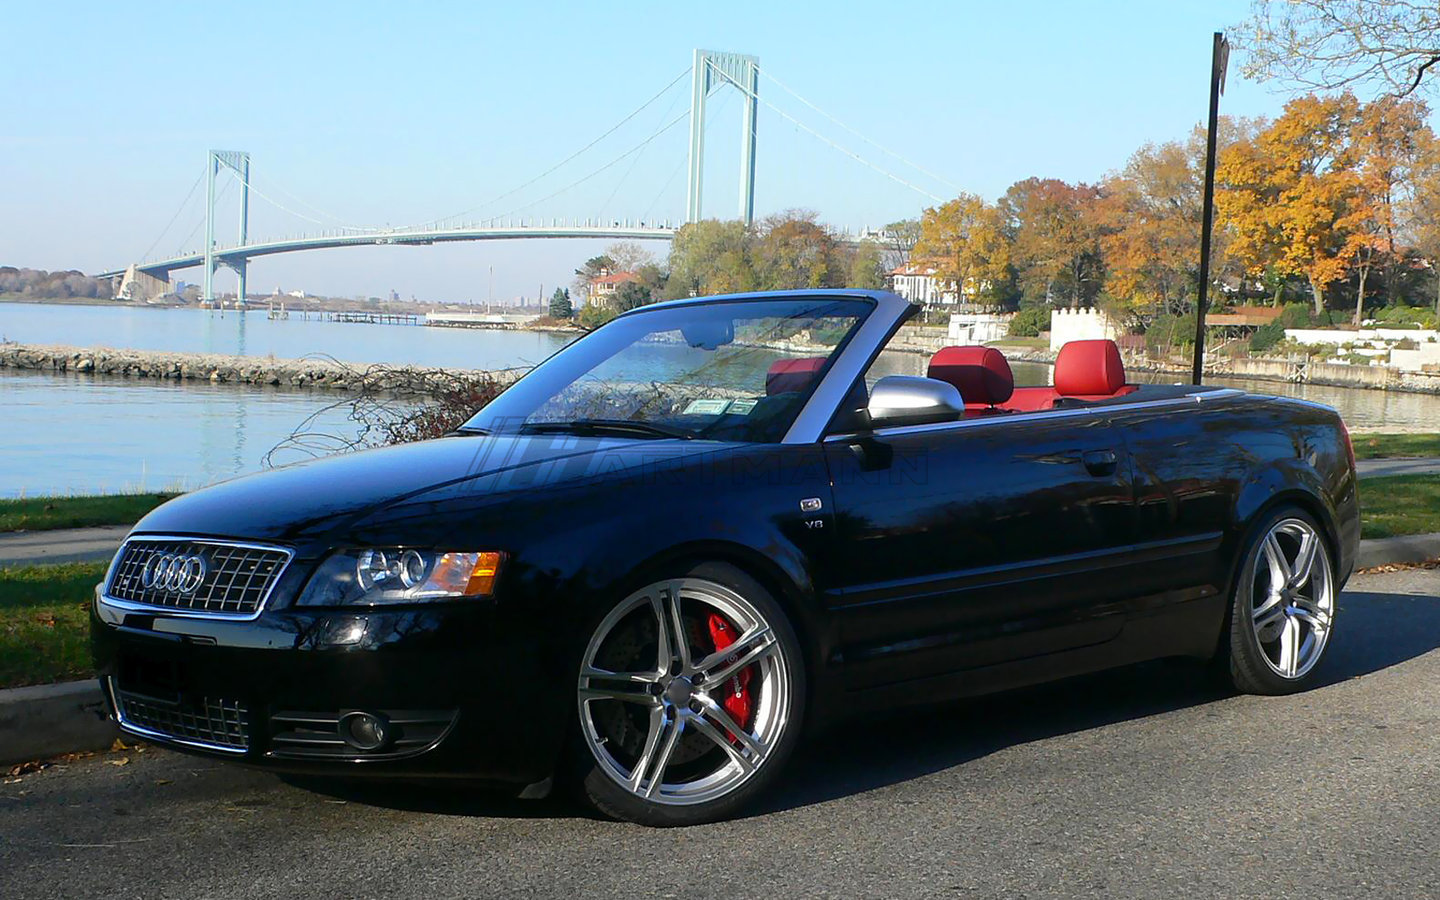 Audi S4 II (B6) 2003 - 2004 Cabriolet #8